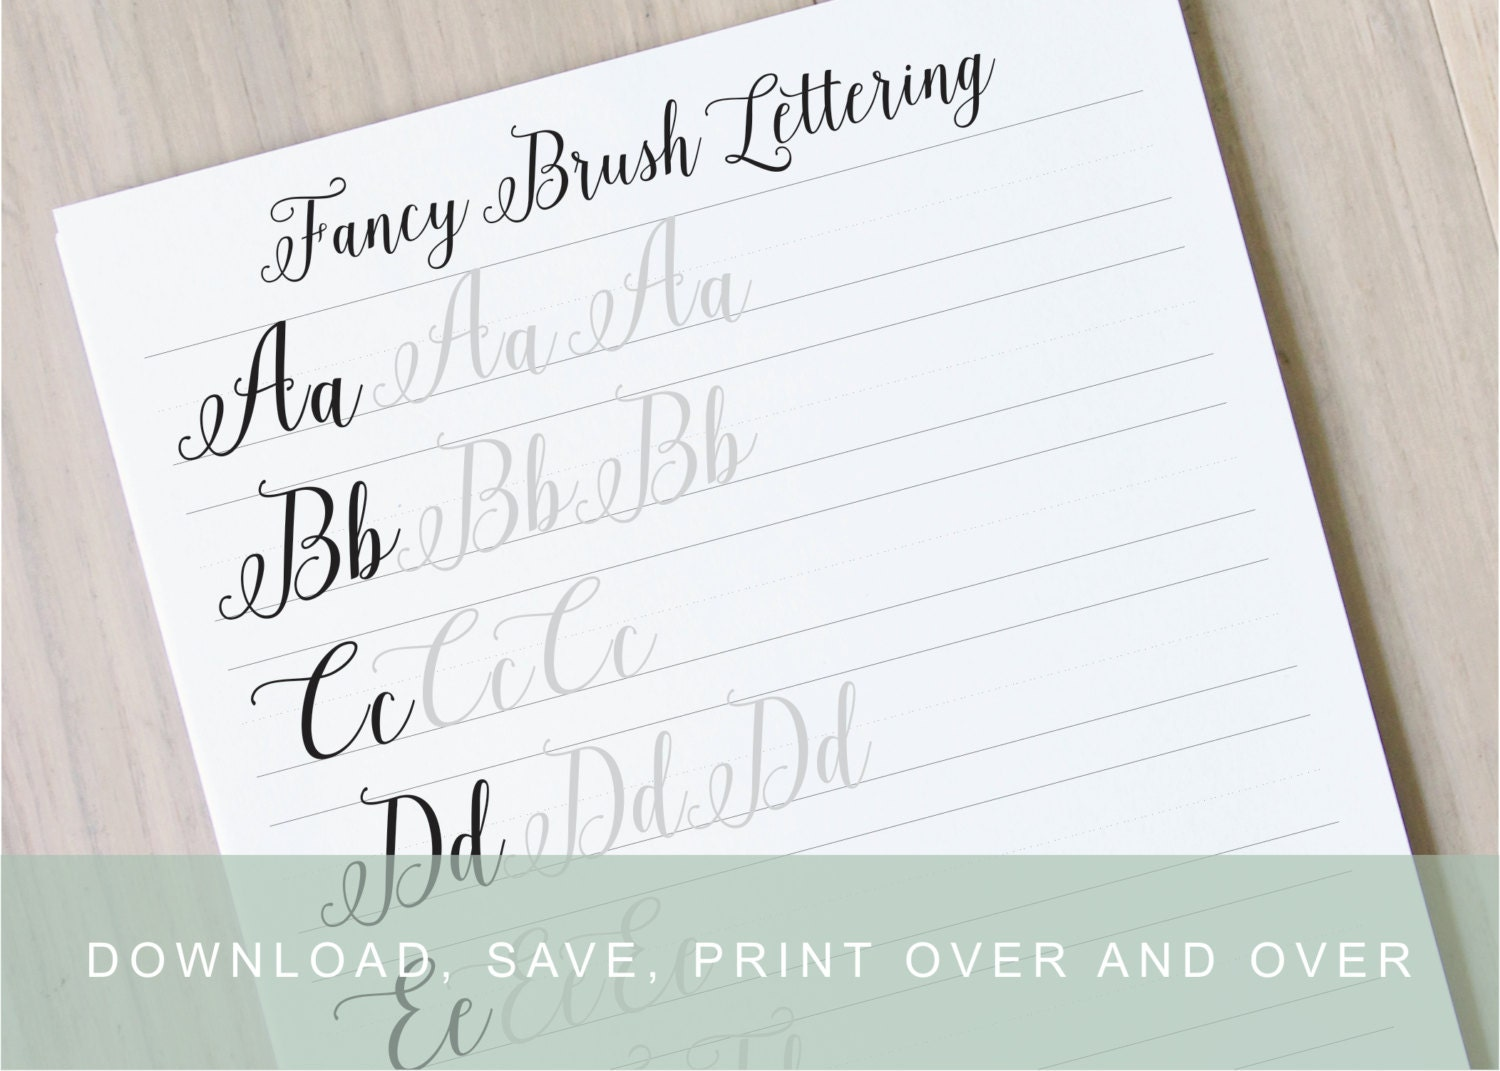 Kyoticrafts: Brush Lettering Obsession